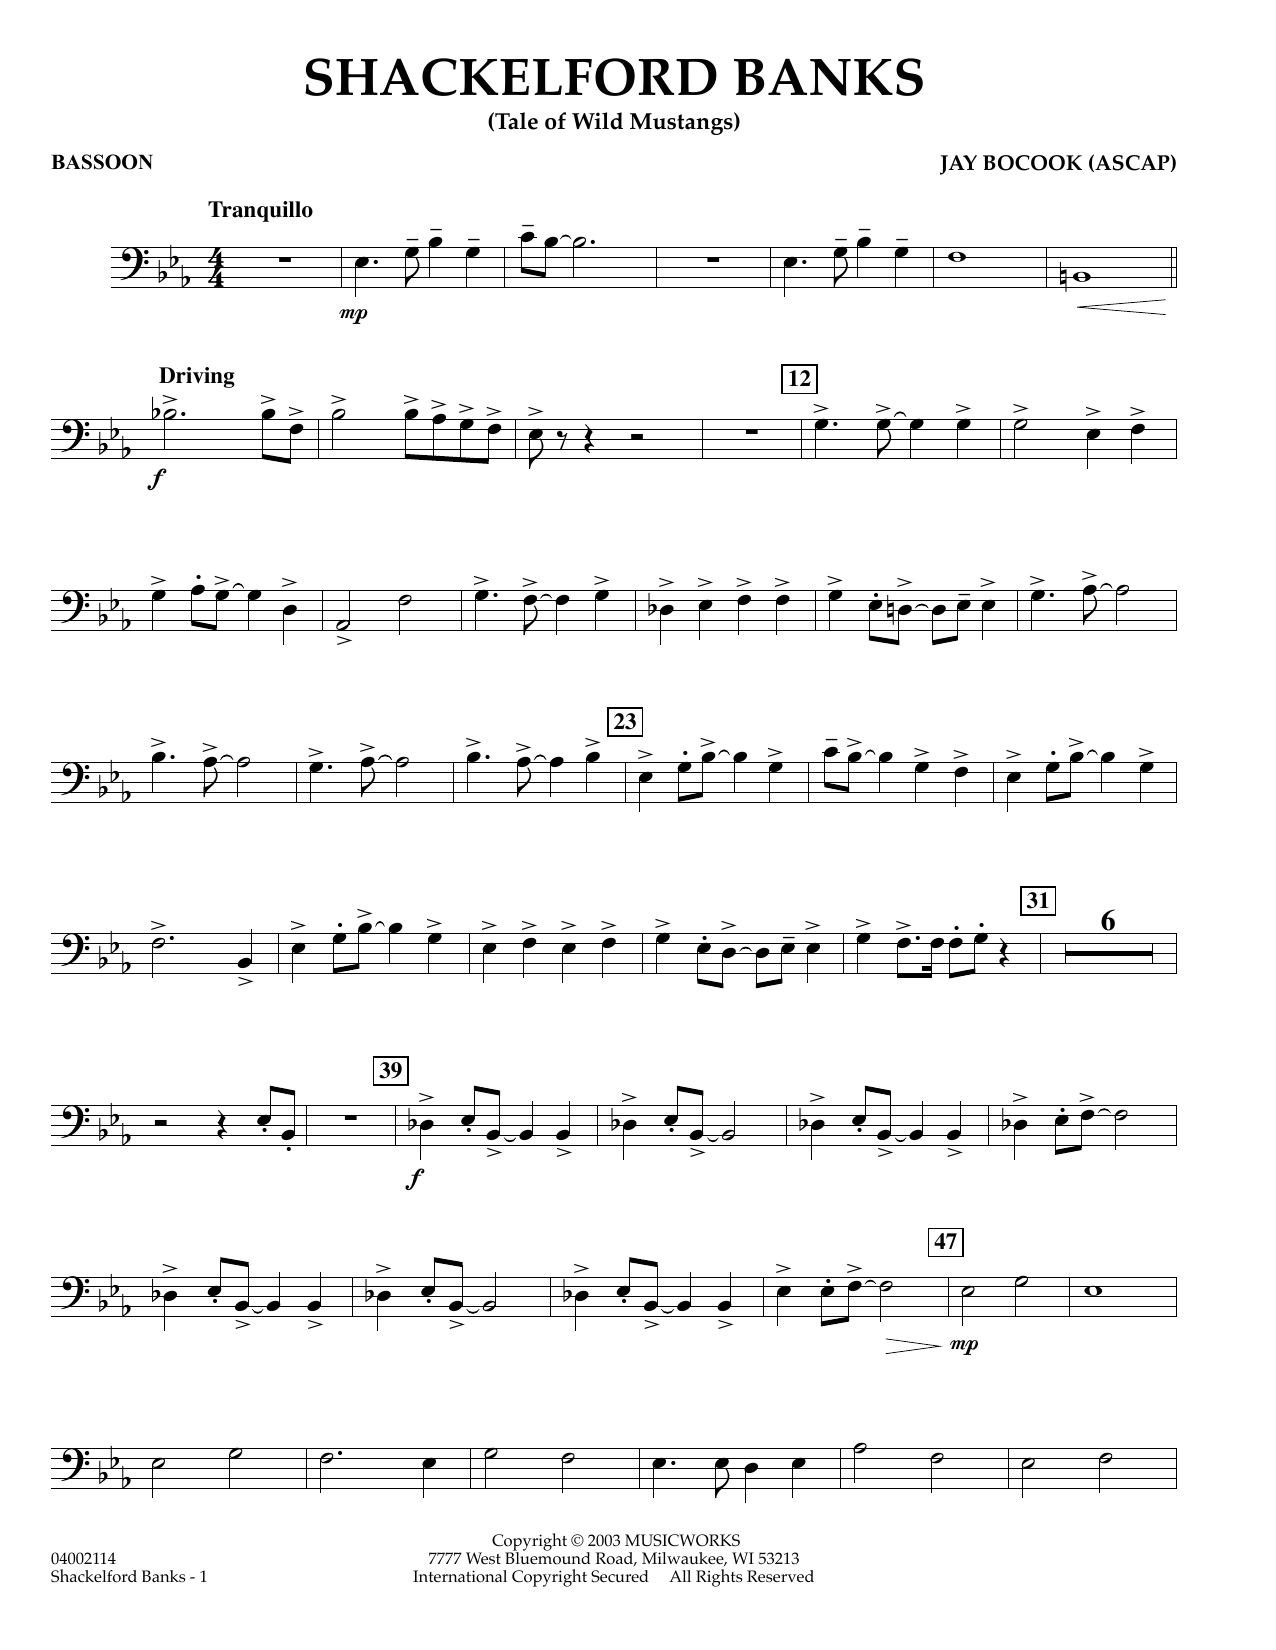 Jay Bocook Shackelford Banks - Bassoon sheet music preview music notes and score for Concert Band including 2 page(s)